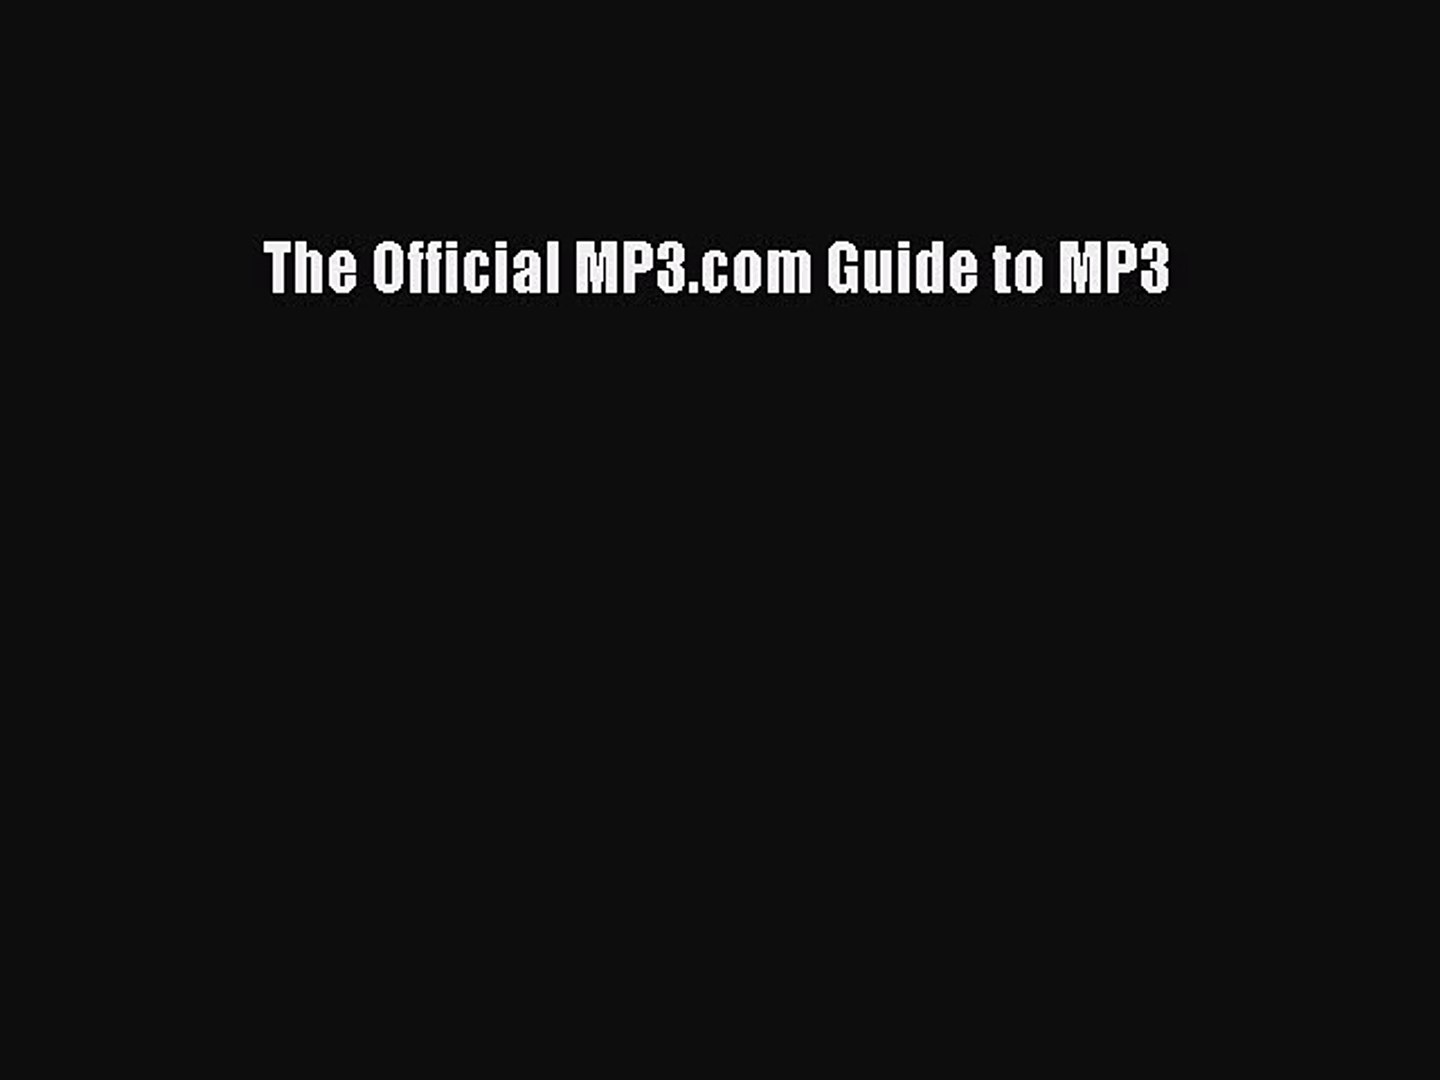 [Read PDF] The Official MP3.com Guide to MP3 Download Online